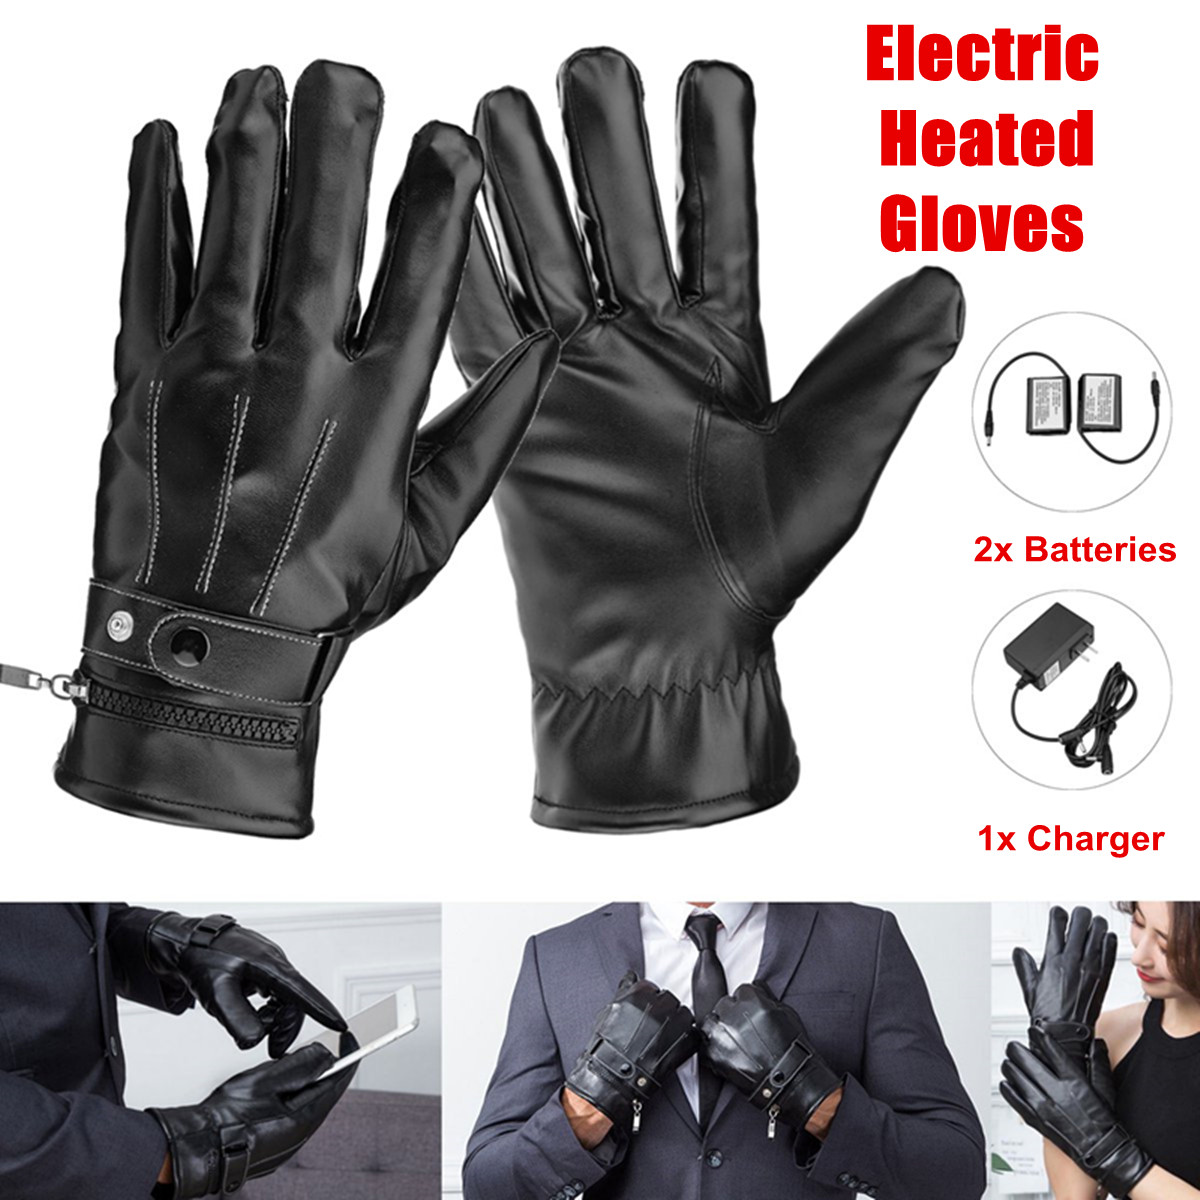 1 Pair Electric Heated Gloves Winter Thermal Skiing Gloves Unisex Black Bicycle Motorcycle Hands Warmer Rechargeable Battery